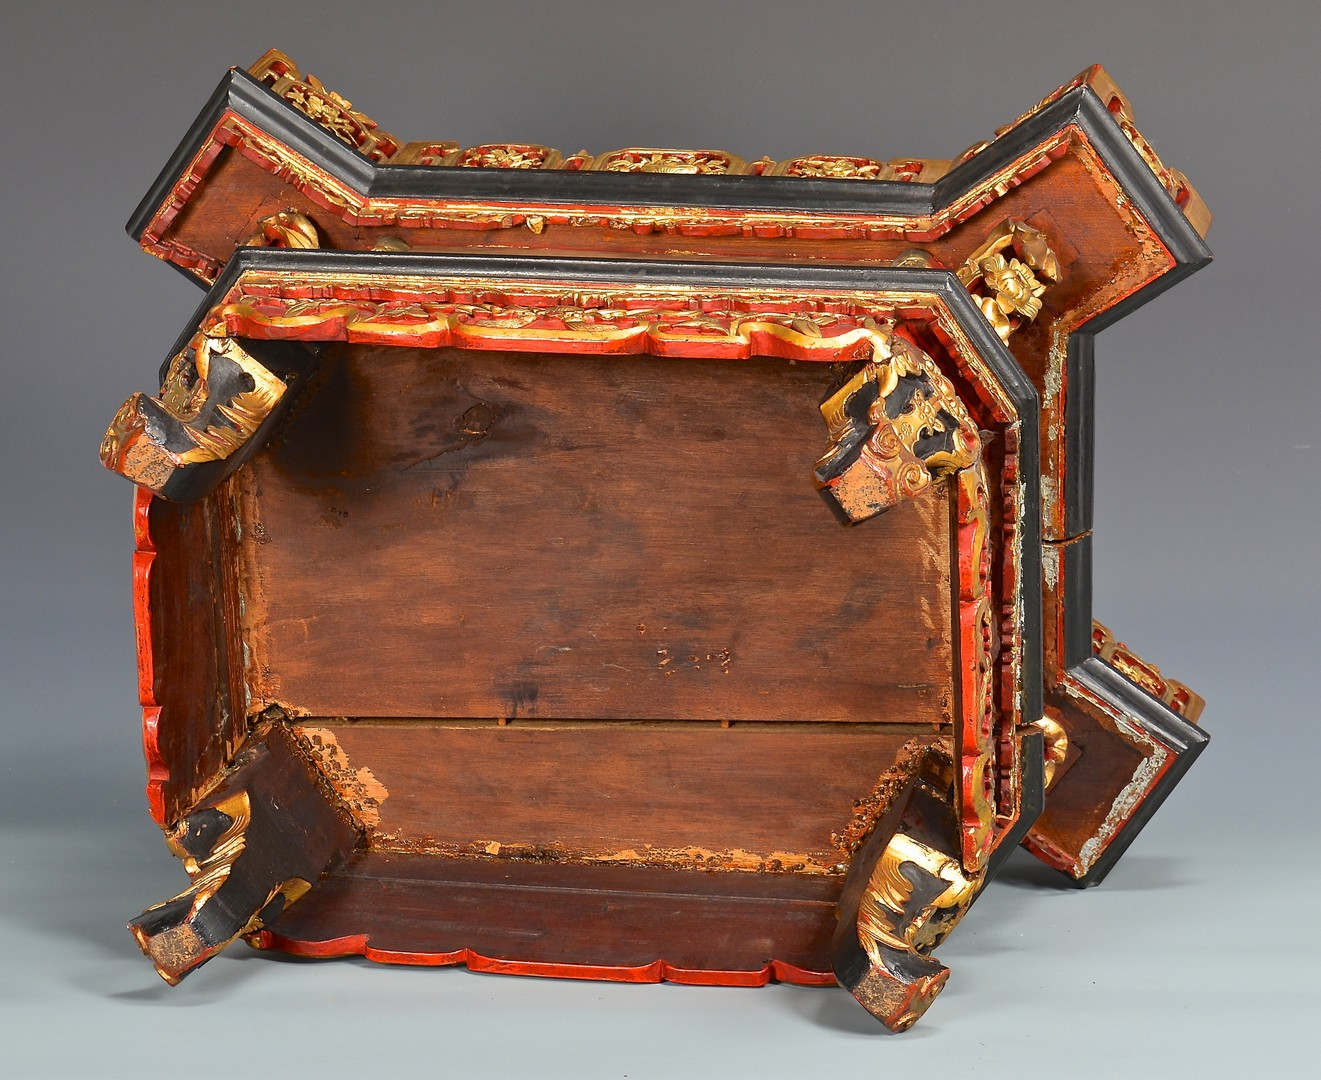 Lot 17: Chinese Gilt Carved Temple Altar or Shrine